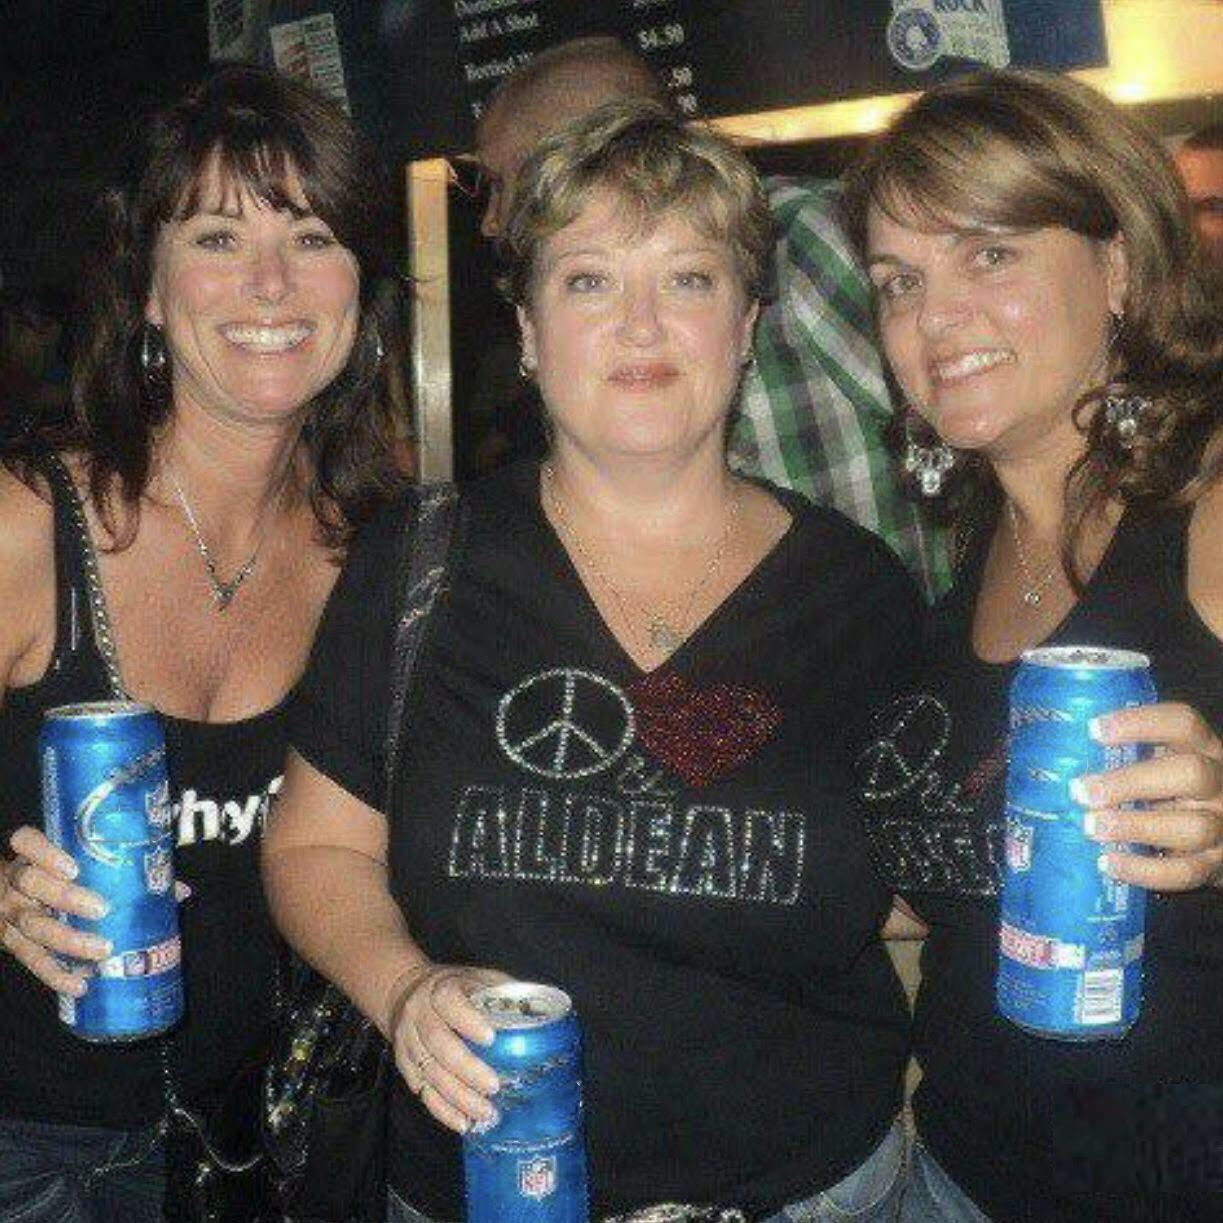 CONGRATULATIONS TO THE ALDEAN ARMY MAY FAN OF THE MONTH